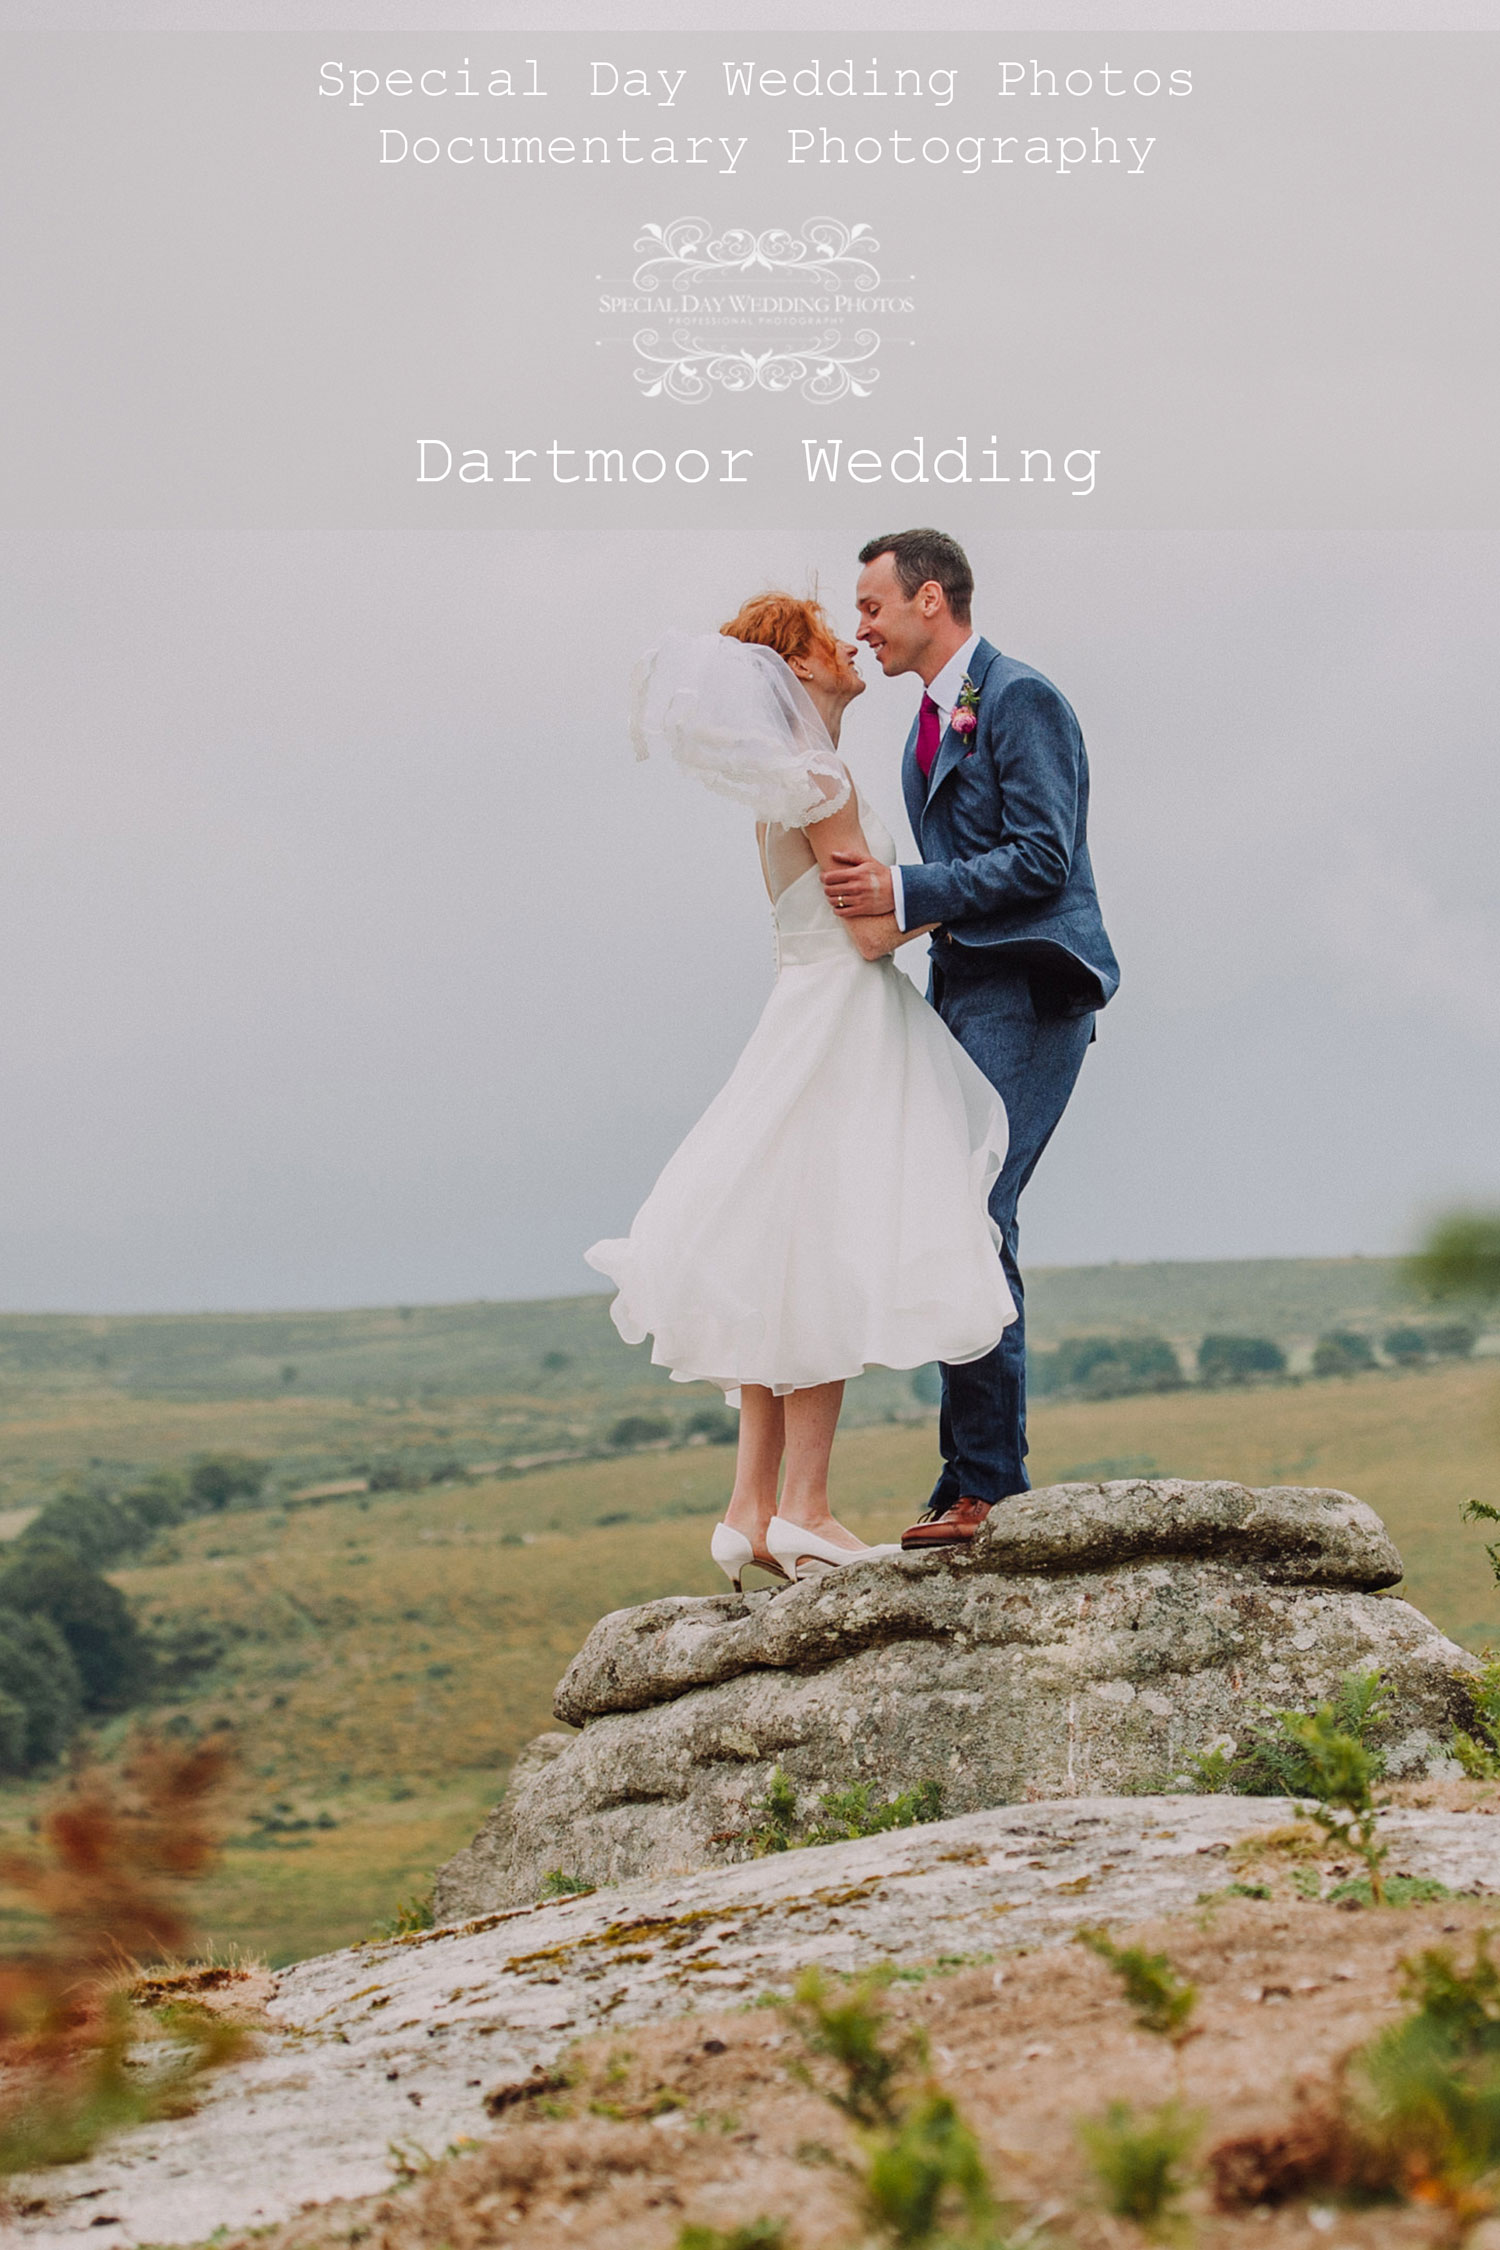 #dartmoorwedding #dartmoorweddingphotographer #devonweddingphotographer #barnweddingdevon rusticweddingdevon #devon #outdoorwedding #documentaryweddingphotographer #documentaryweddingphotography #storybookwedding #wedding #weddingideas #devonweddingphotographer #weddingphotographerdevon #ukweddingphotographer #sdwphotos #documentaryweddingphotographerdevon #reportageweddingphotographer #mrandmrs #junebugweddings #theenglishweddingblog #bohoweddings #bohowedding #theknot #devonbrides #humanistwedding